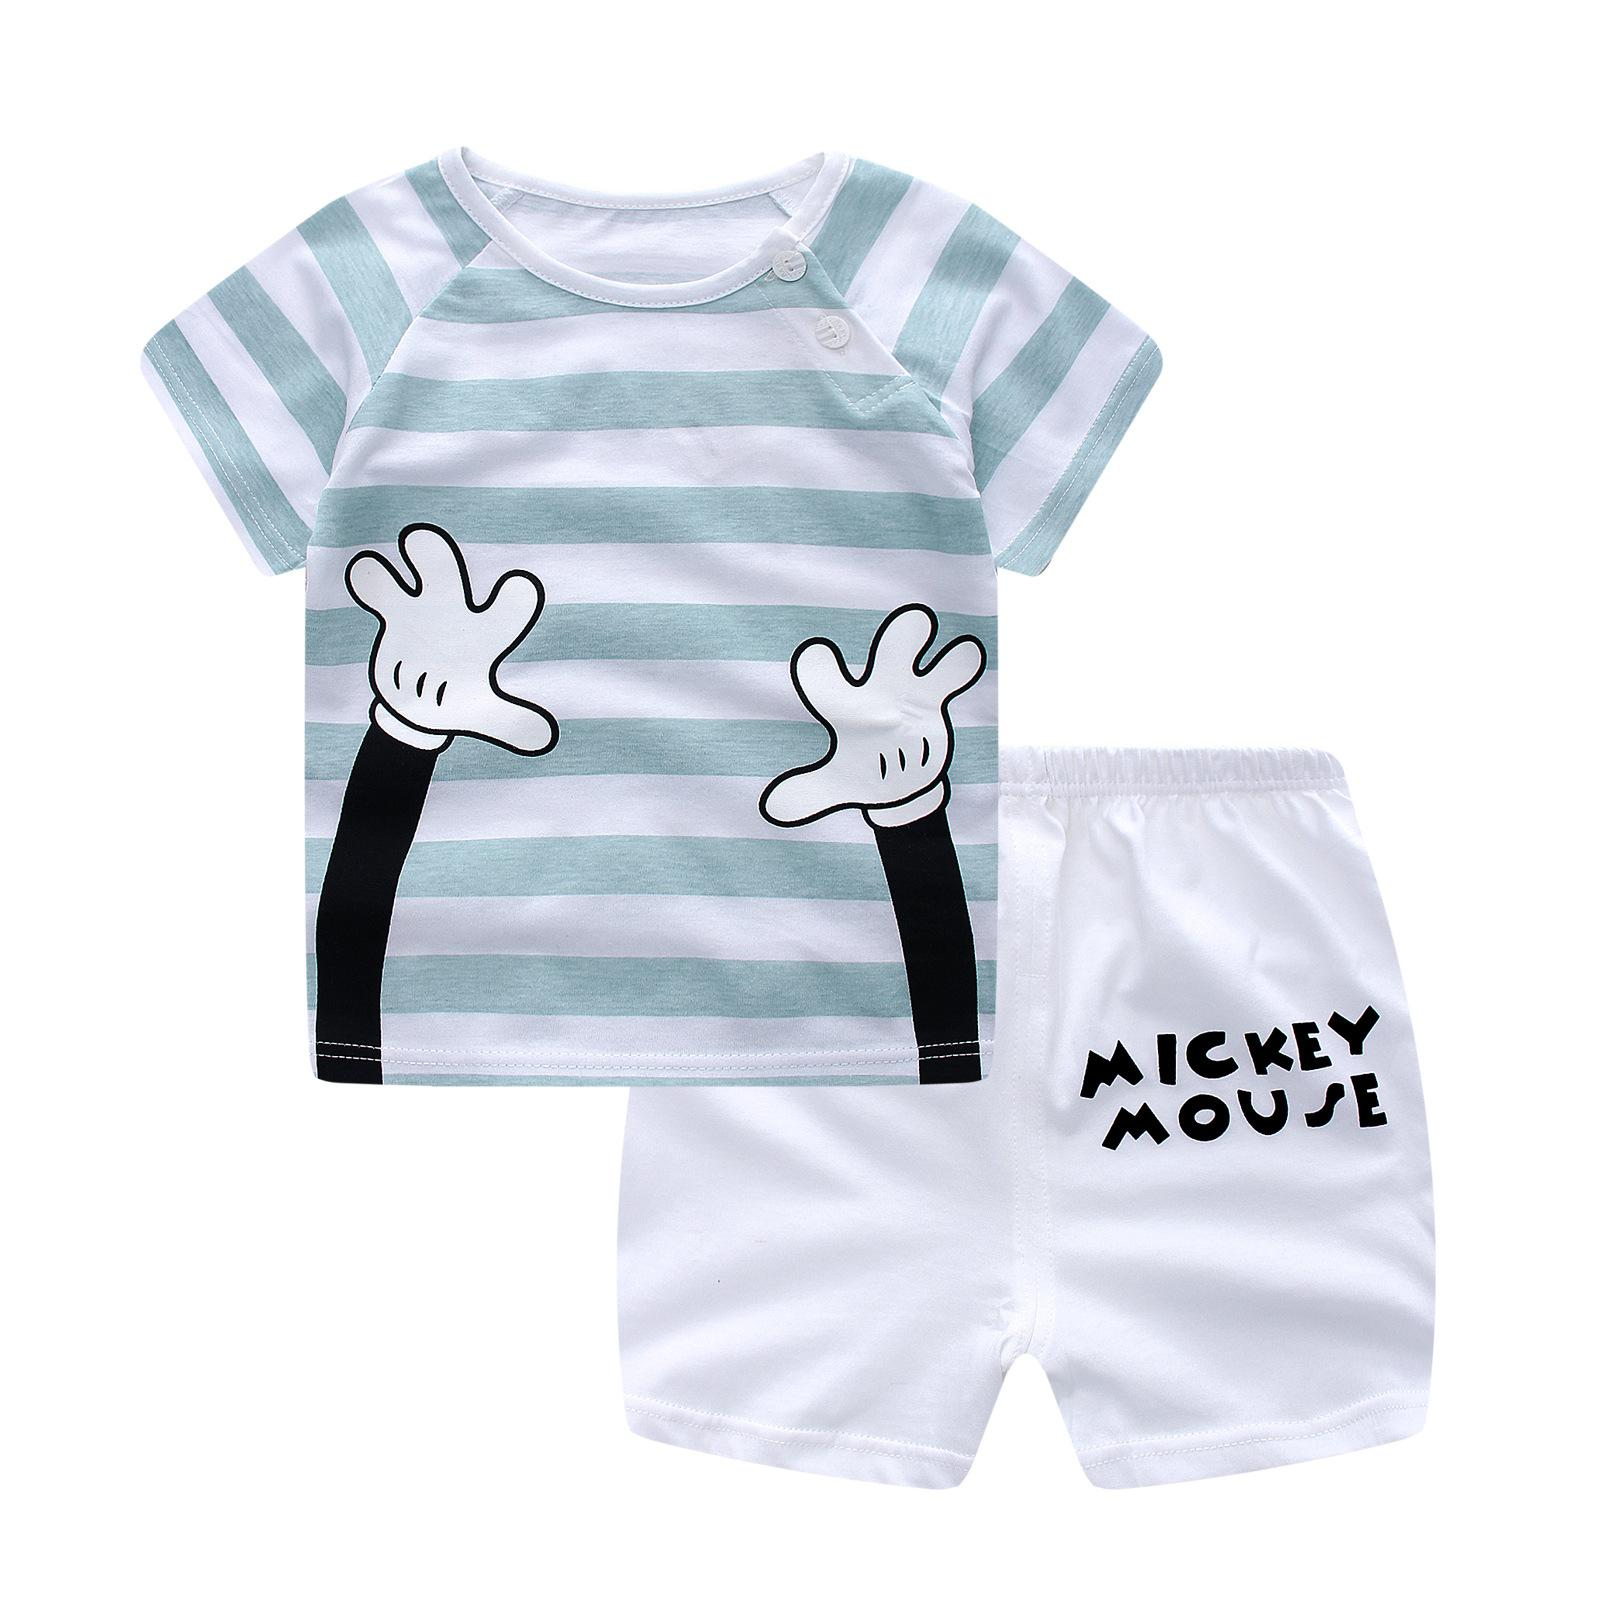 8fe155406d30 2019 2018 New Baby Clothing Sets Summer Short Sleeve Cotton T Shirt +Pant  Kid Children Baby Girl Boy Clothes Leisure Suit From Runbaby